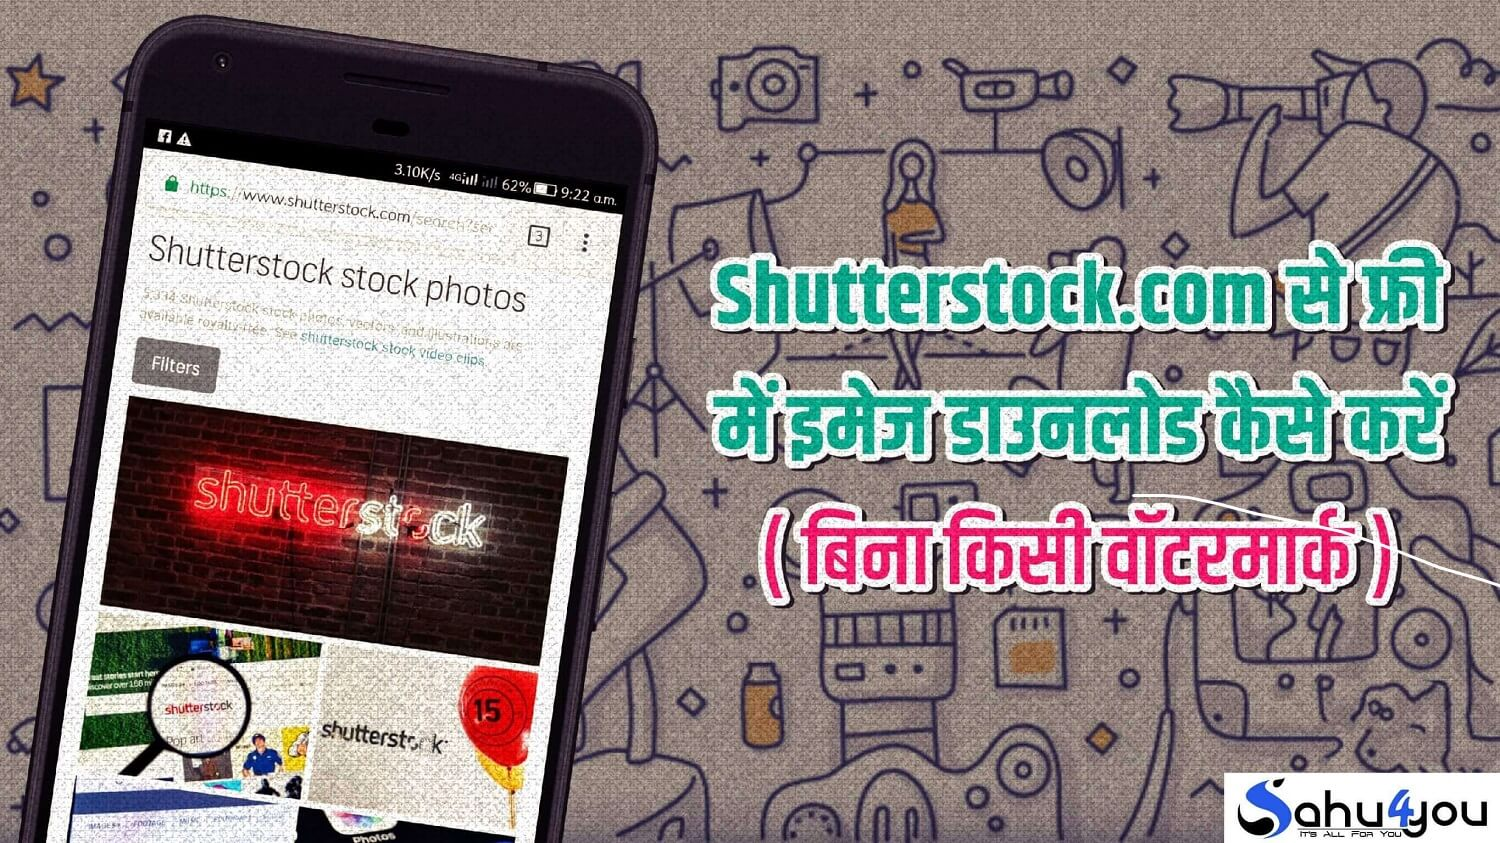 Shutterstock Images Free Download कैसे करे Without Watermark